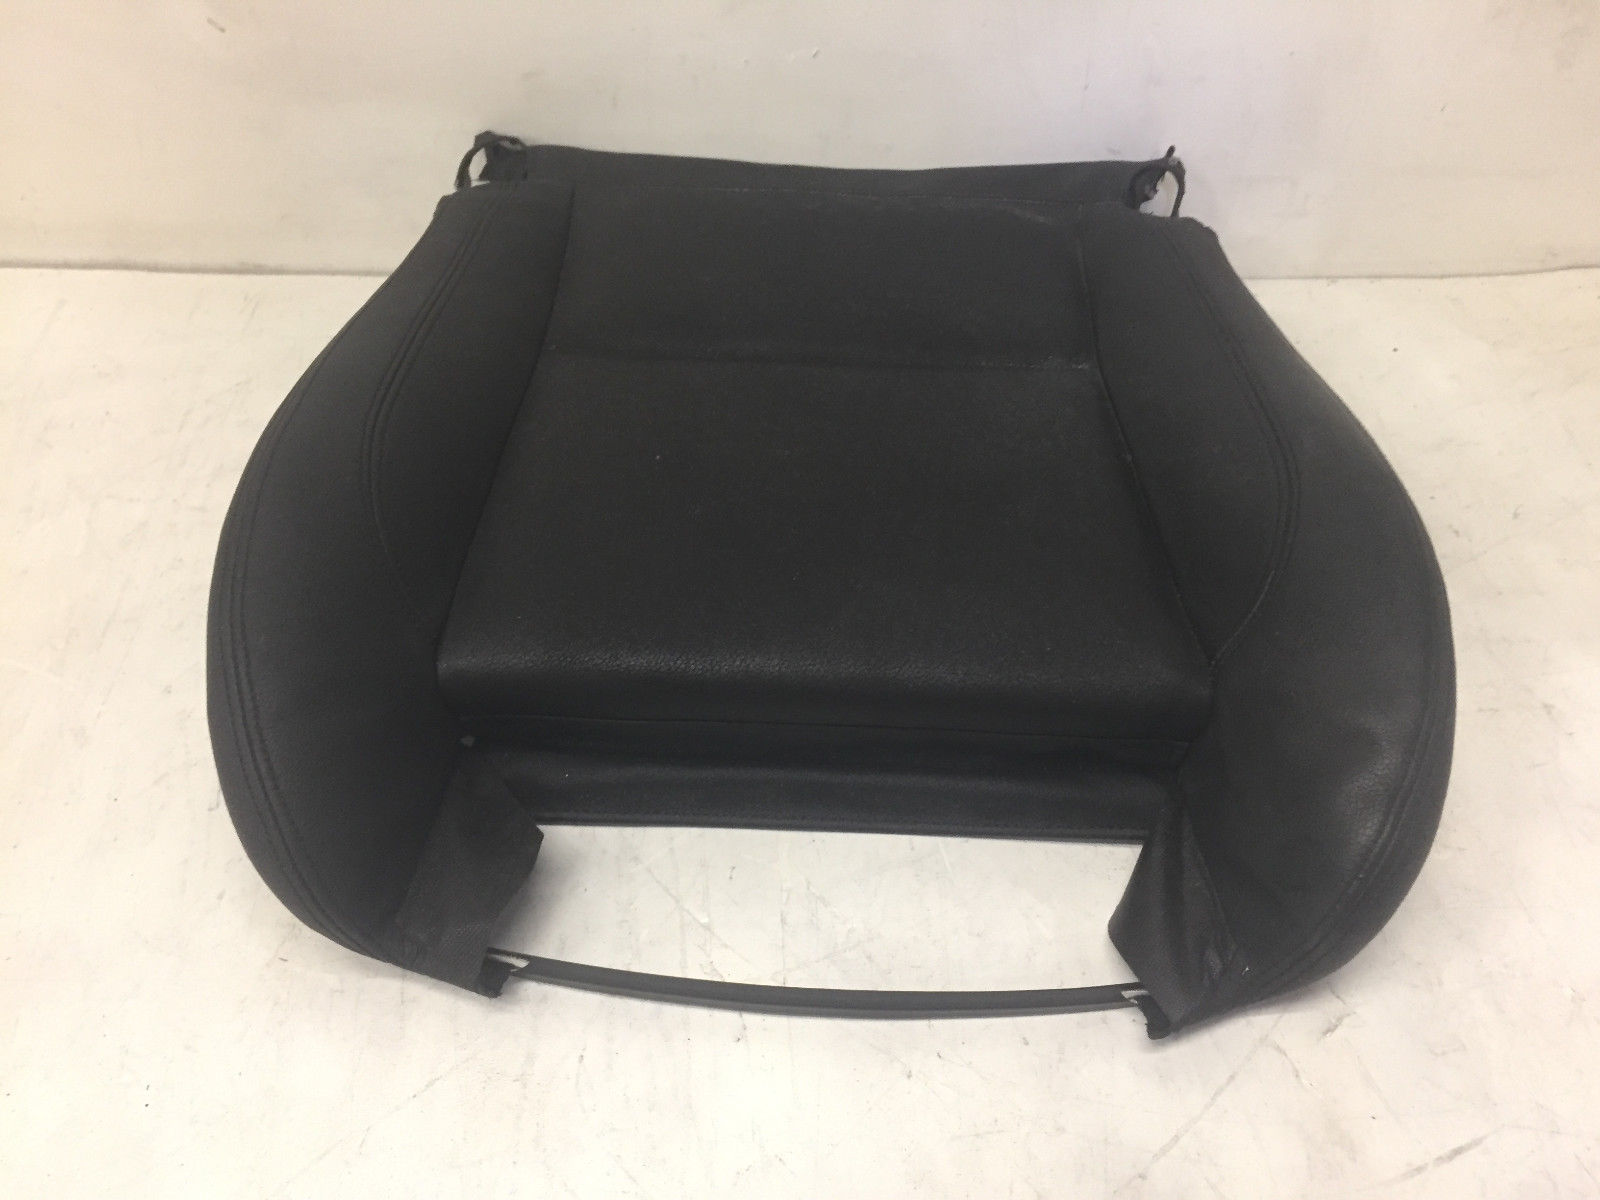 2013 BMW X1 Front Left Driver Said Lower Leather Seat